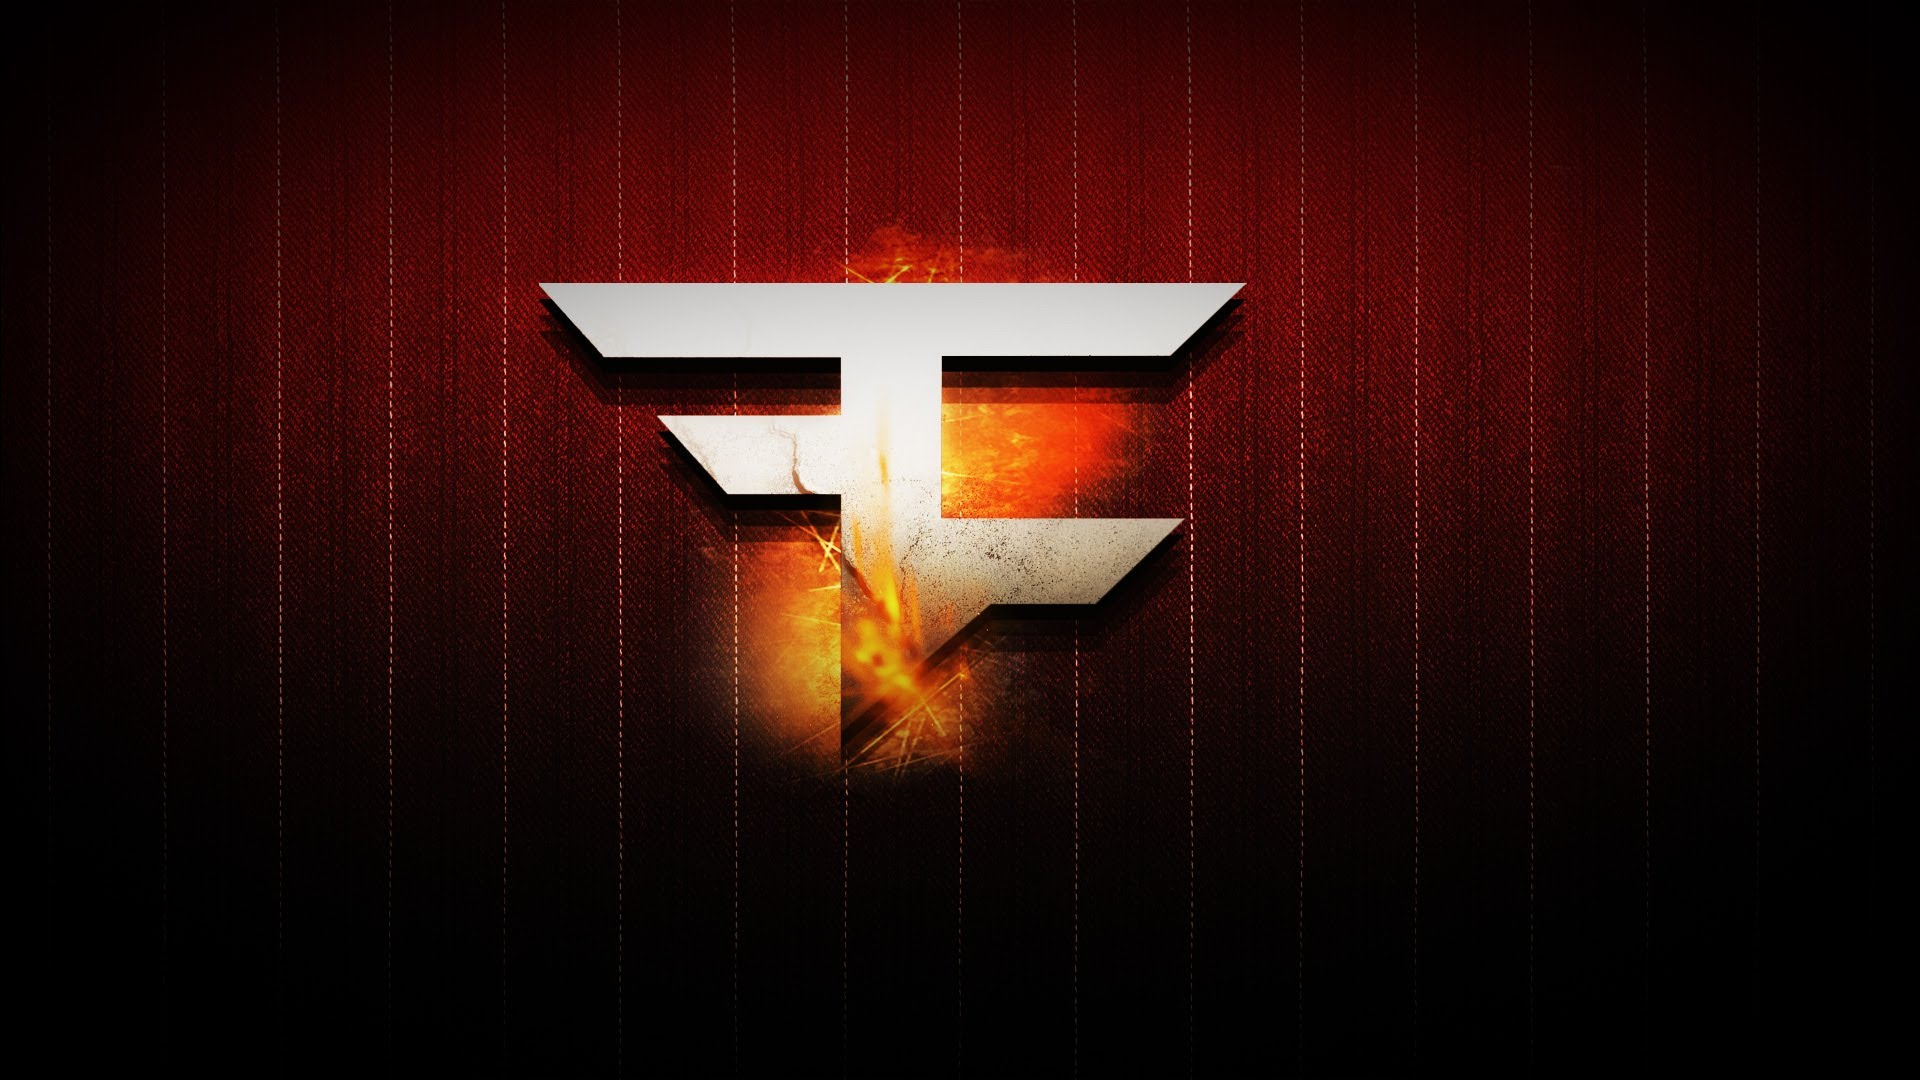 FaZe Clan 1080p Wallpaper